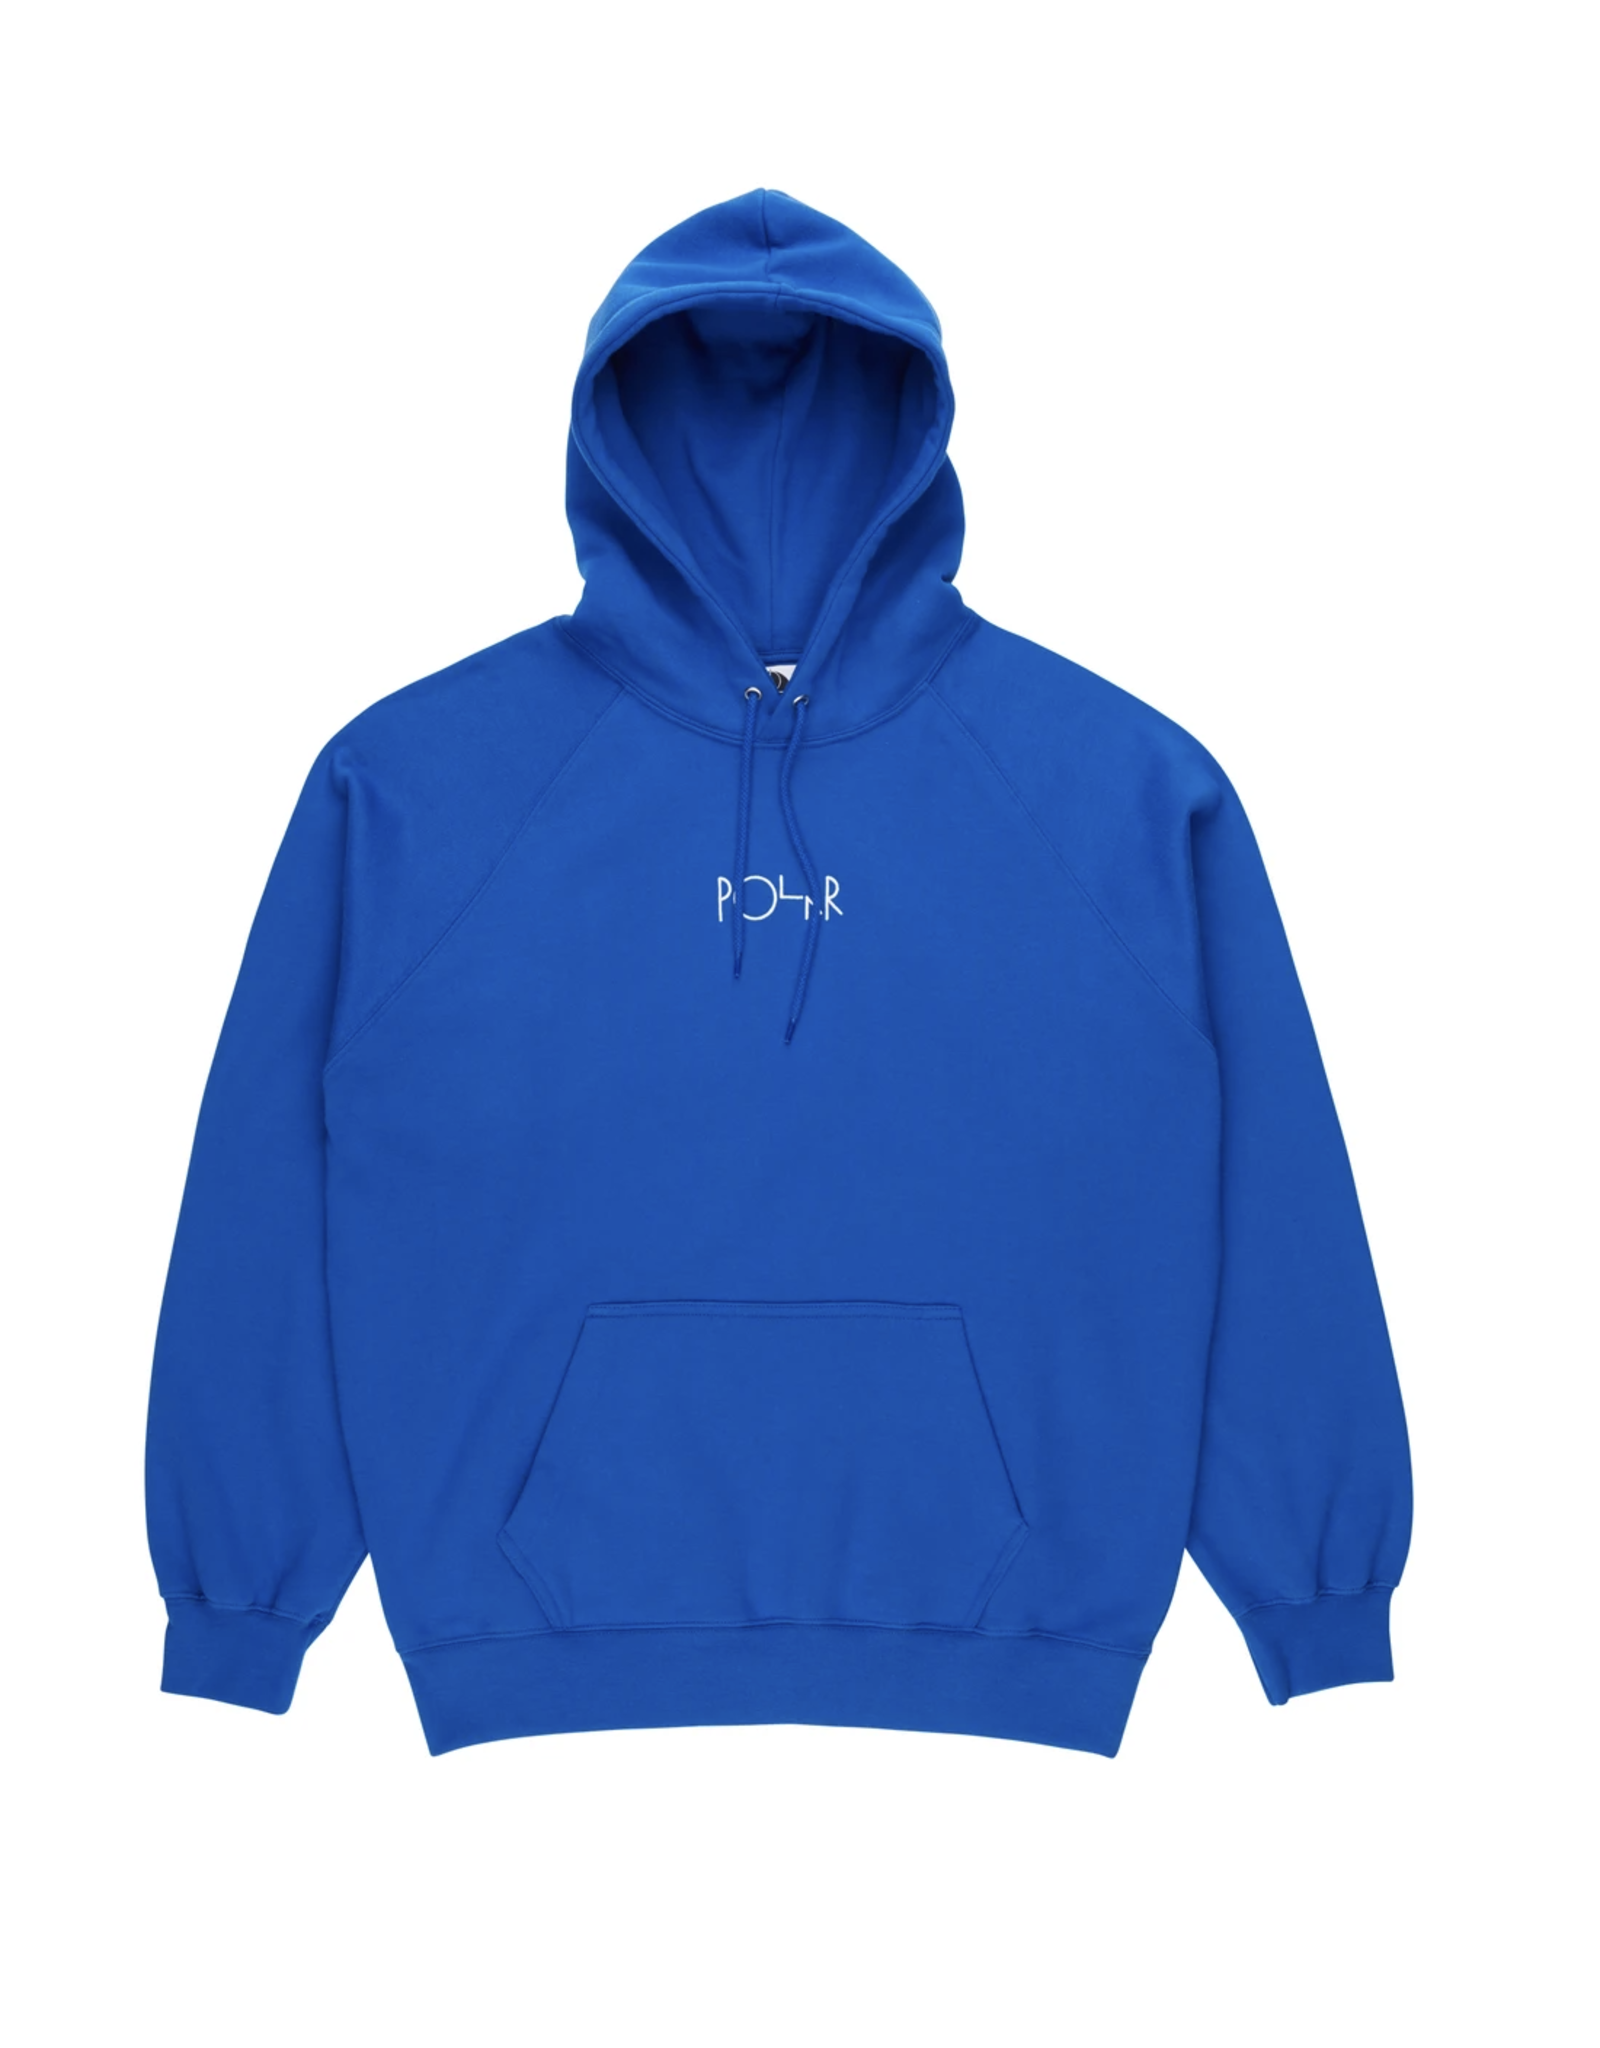 Polar Default Hoodie - Egyptian Blue